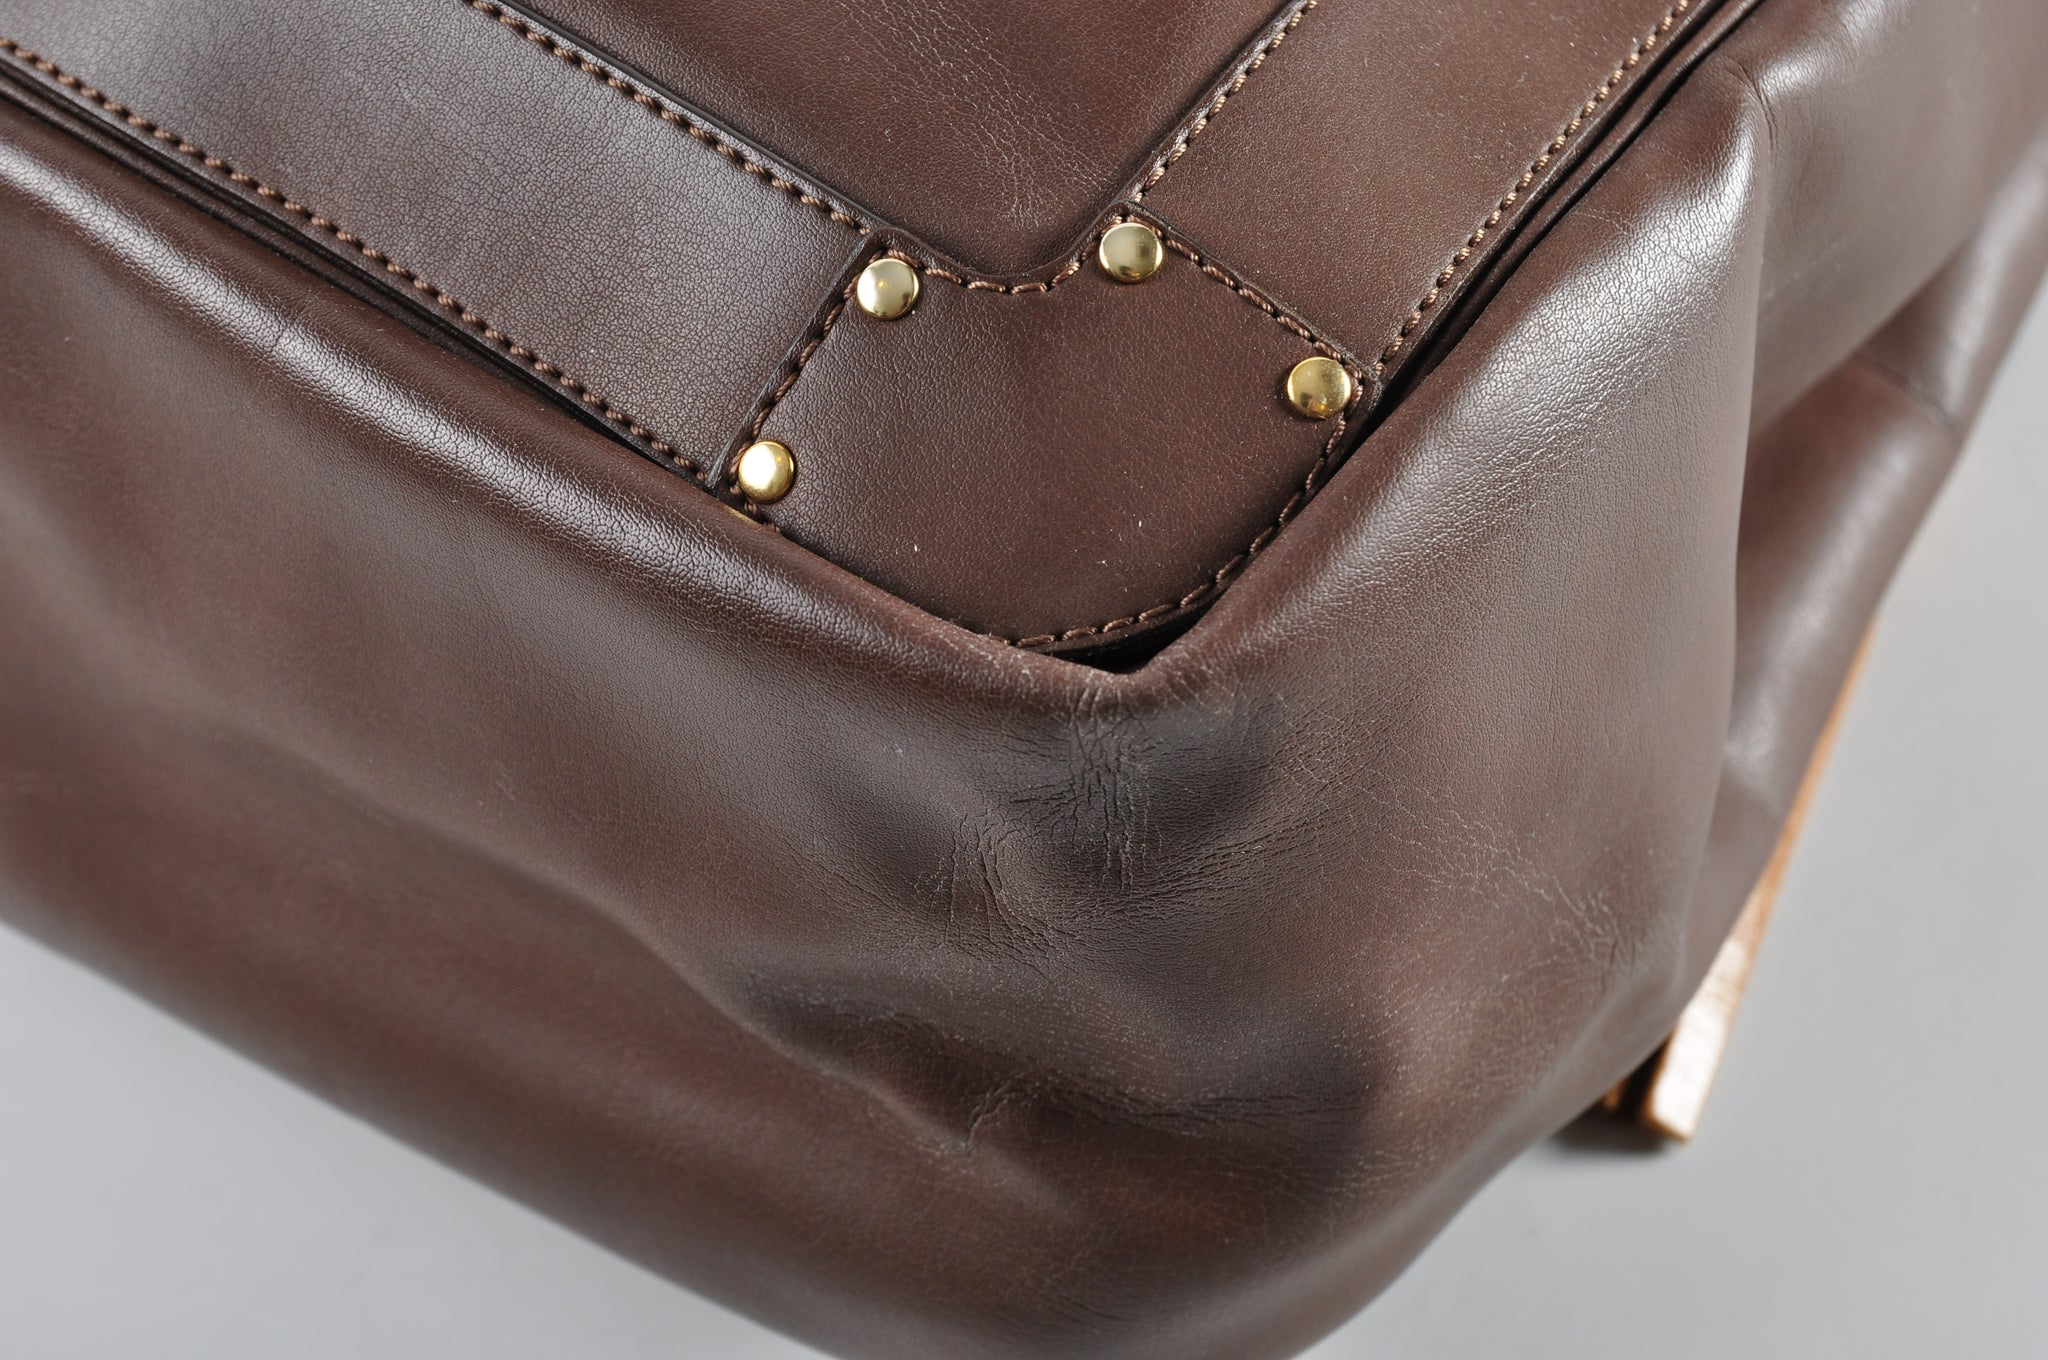 Chloé Tote in Brown Leather - Glampot